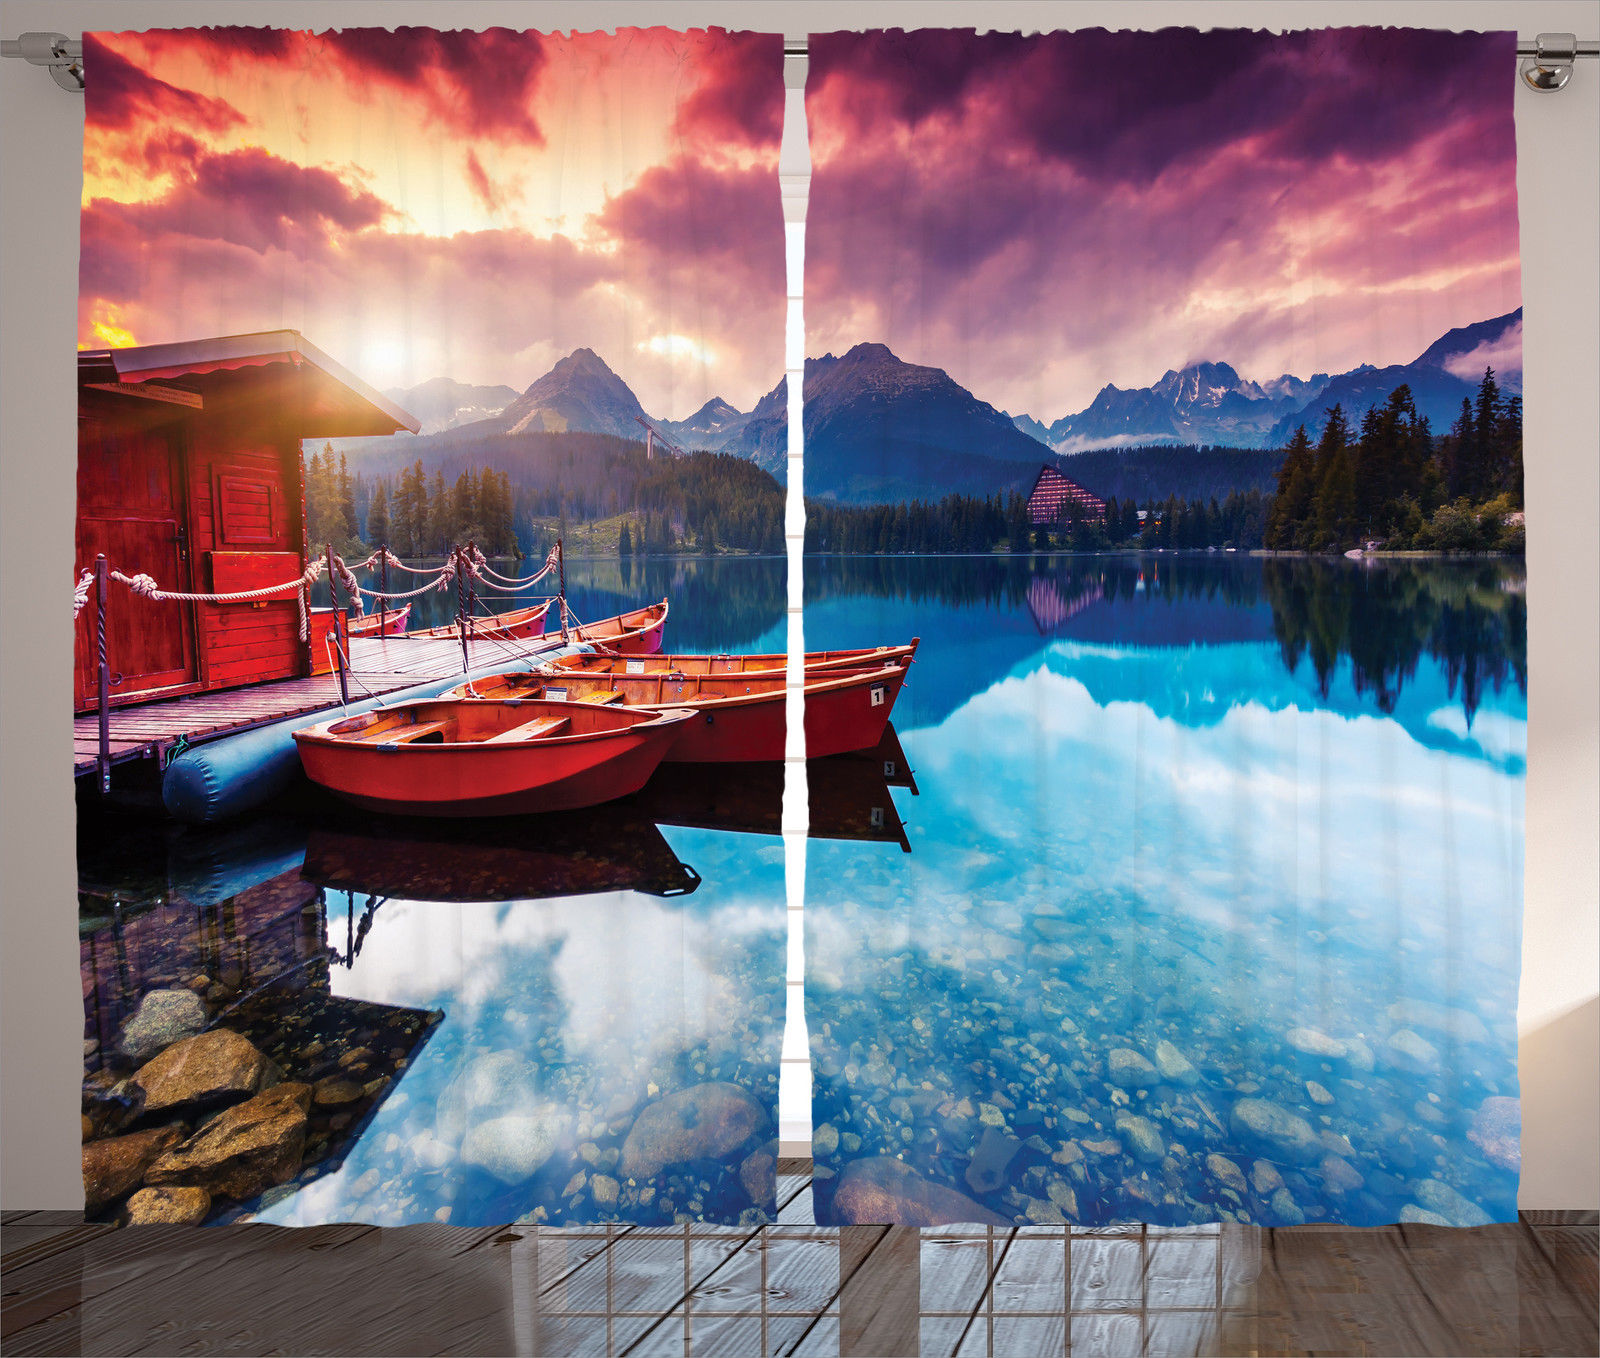 Click here to buy Lake House Decor Curtains 2 Panels Set, Peaceful Mountain Lake With Majestic Sky And Mountains In South Asia Romantic View Photo, Living... by Kozmos.